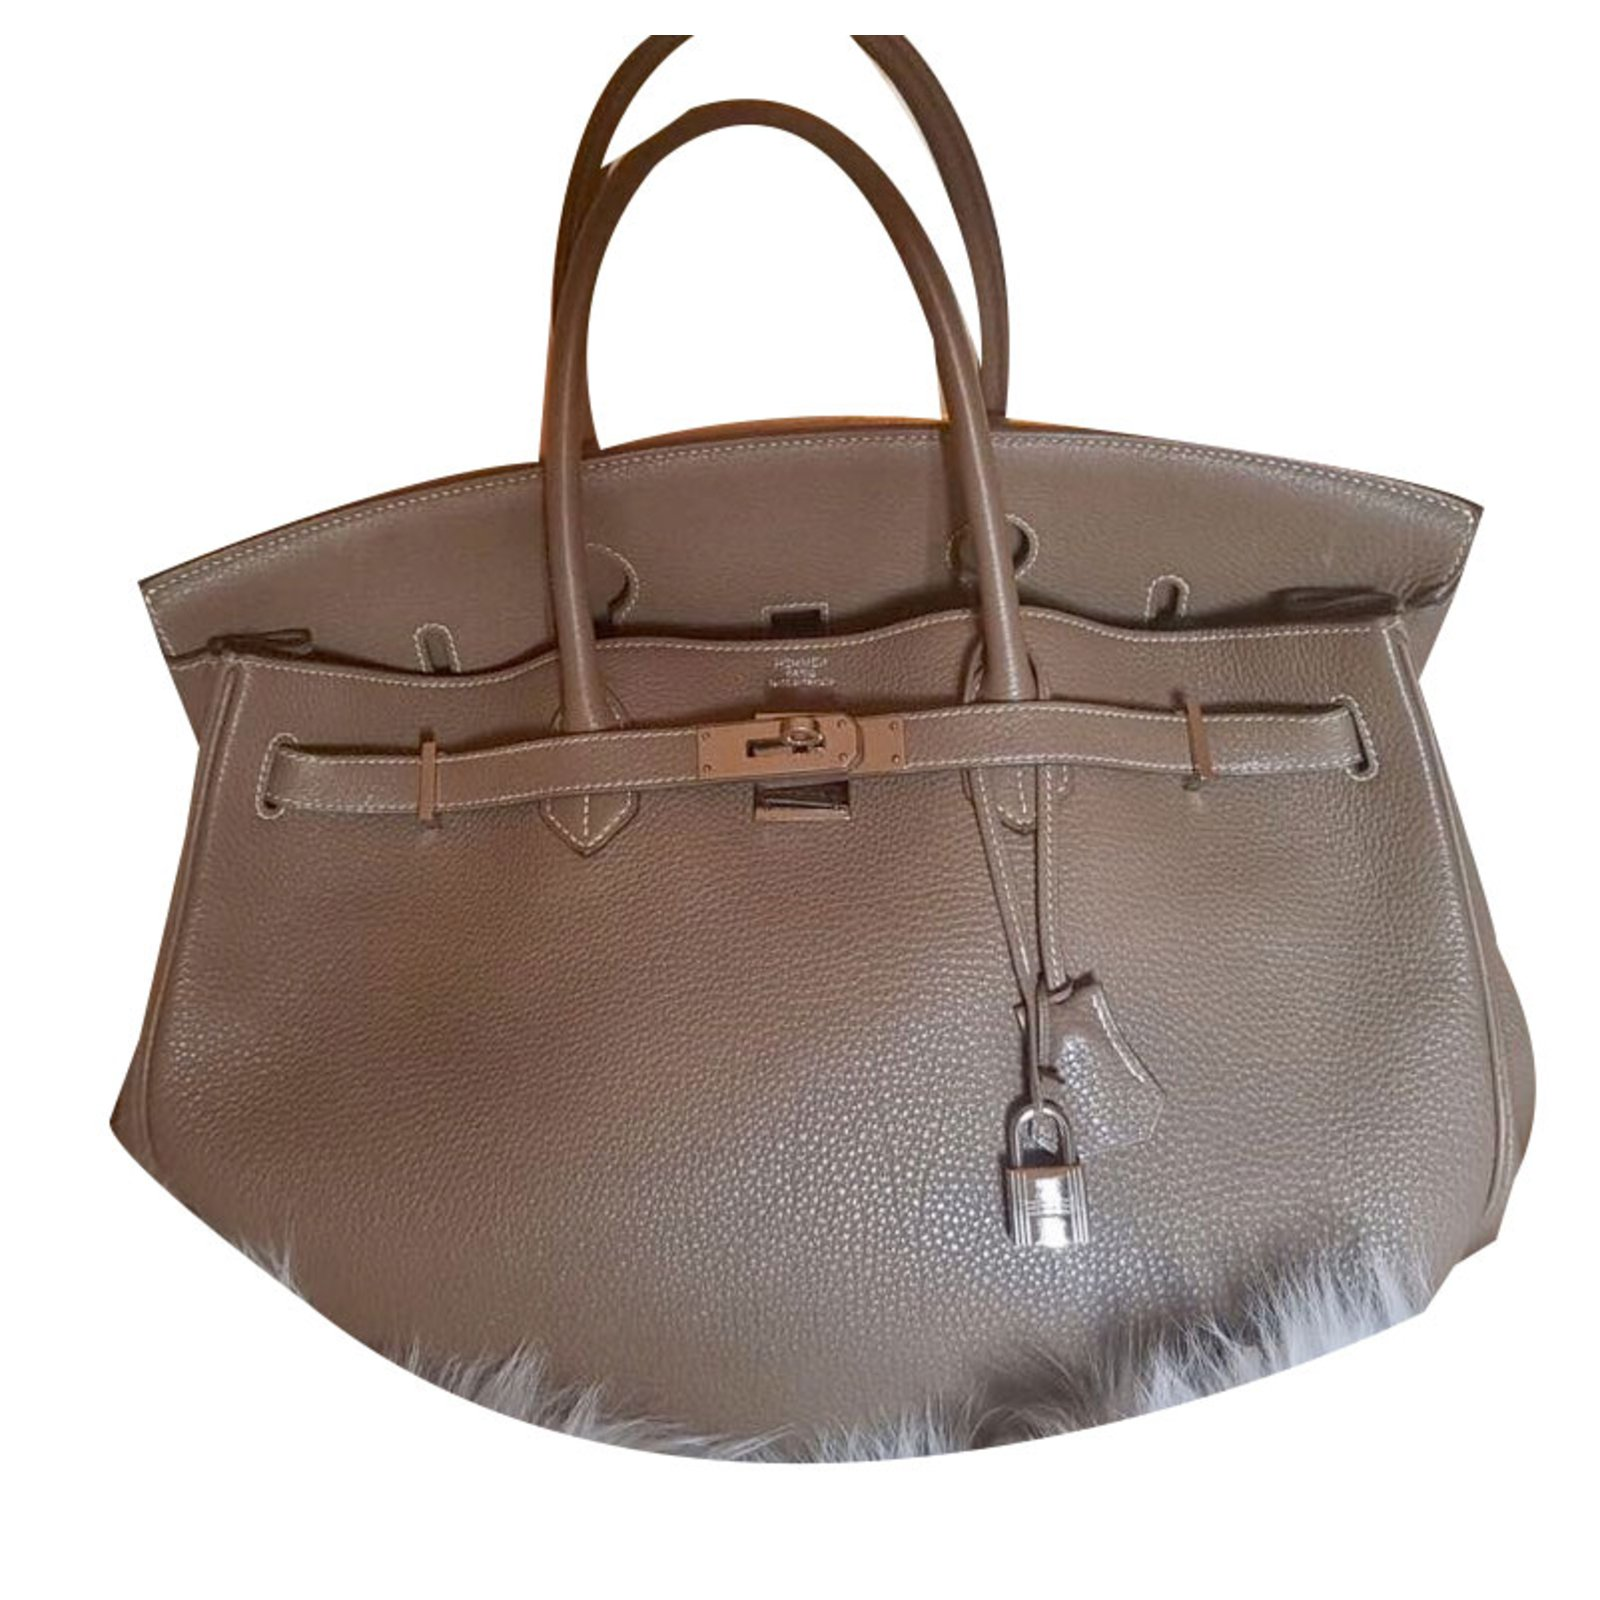 e5ecda6f0167 Hermès Birkin 40 Handbags Leather Taupe ref.53118 - Joli Closet